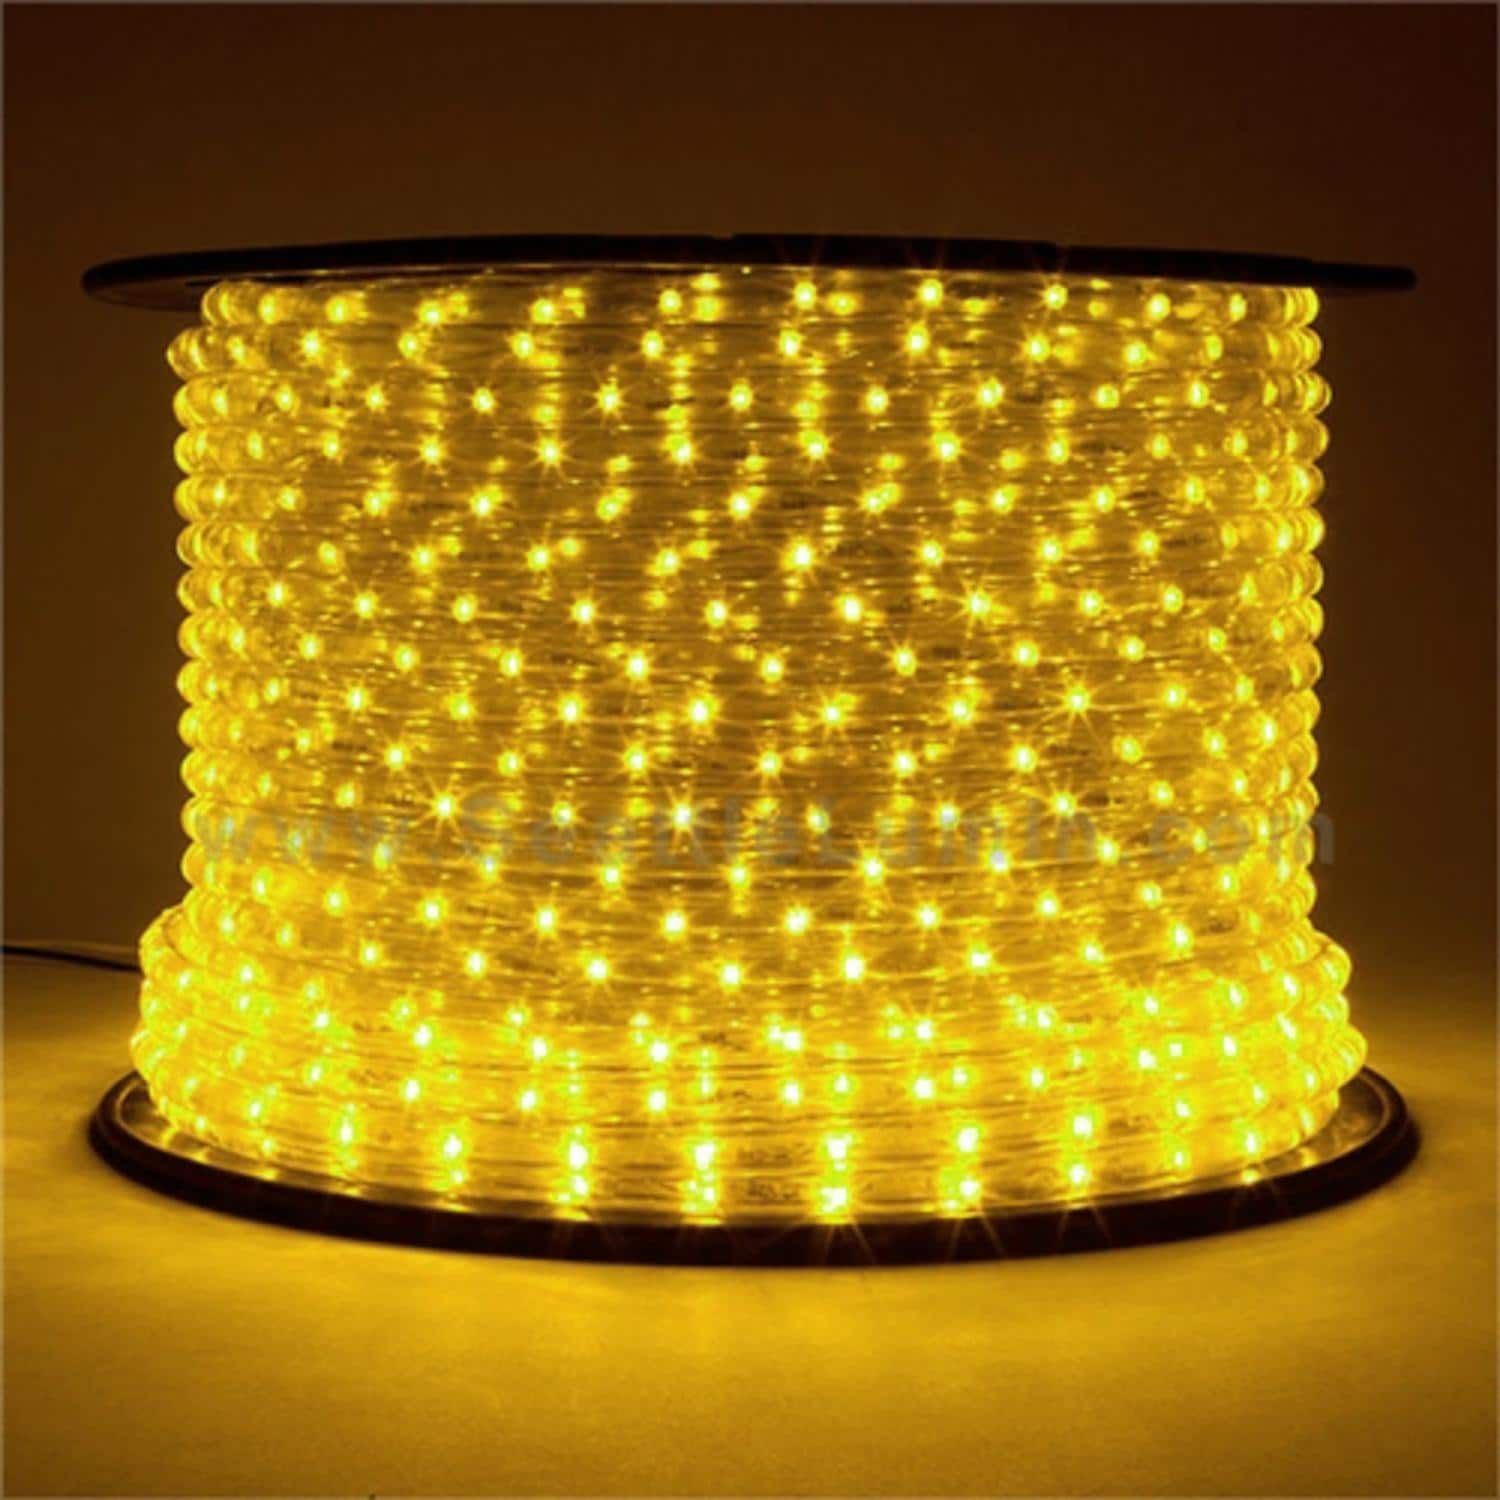 150\' Commericial Grade Yellow LED Indoor/Outdoor Christmas Rope ...